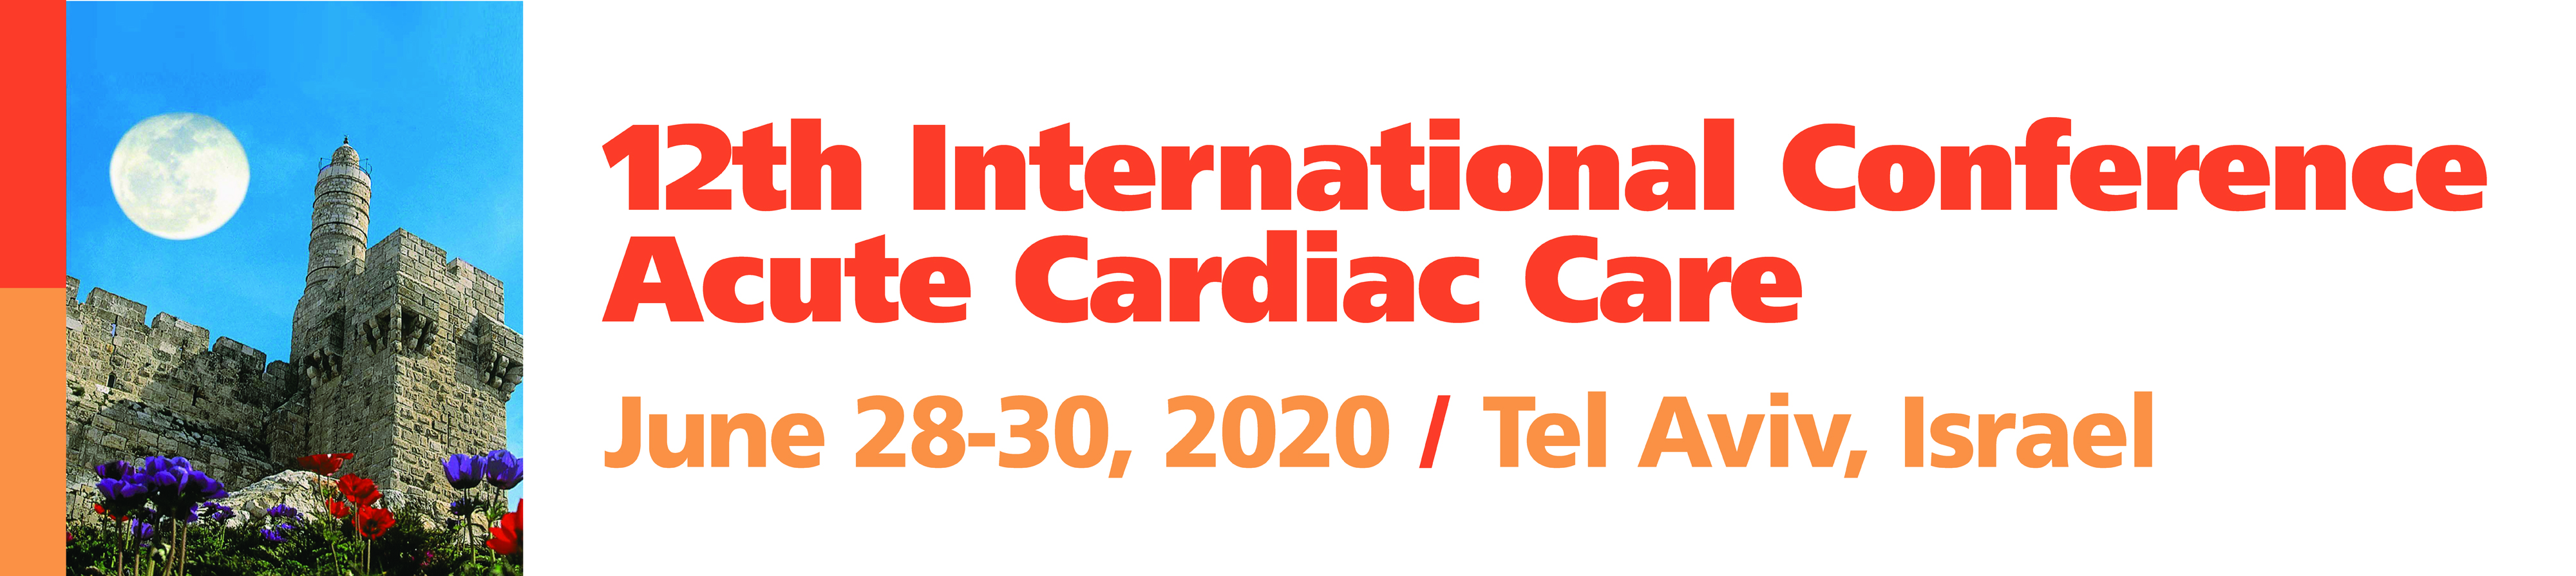 12th International Conference on Acute Cardiac Care – 2020